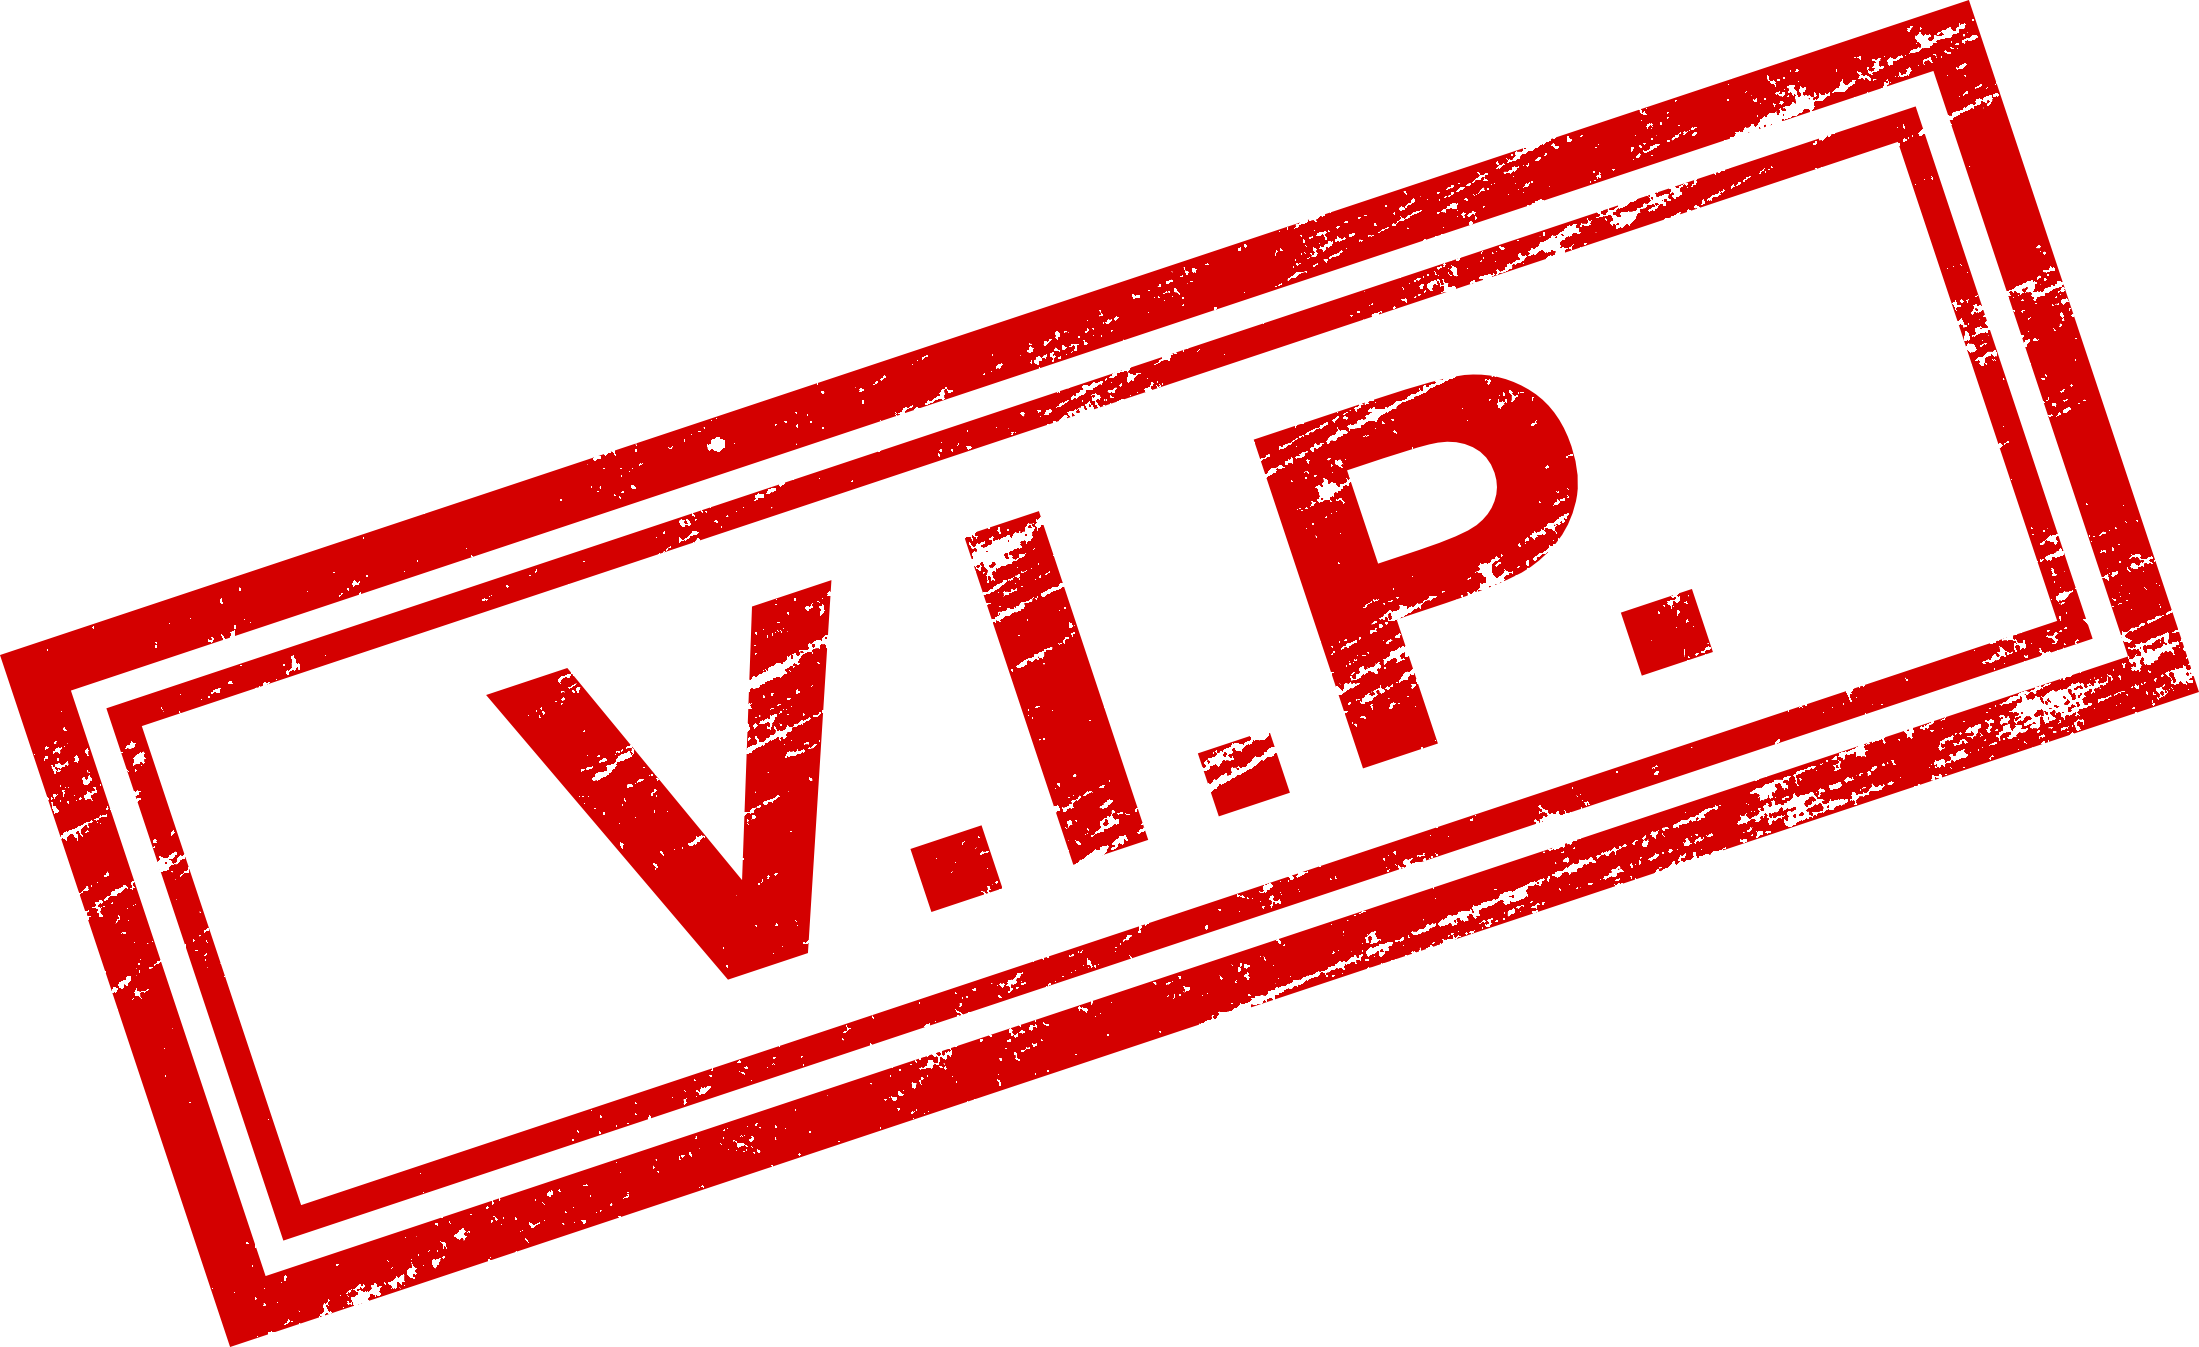 vip vector png. Stamp clipart classified